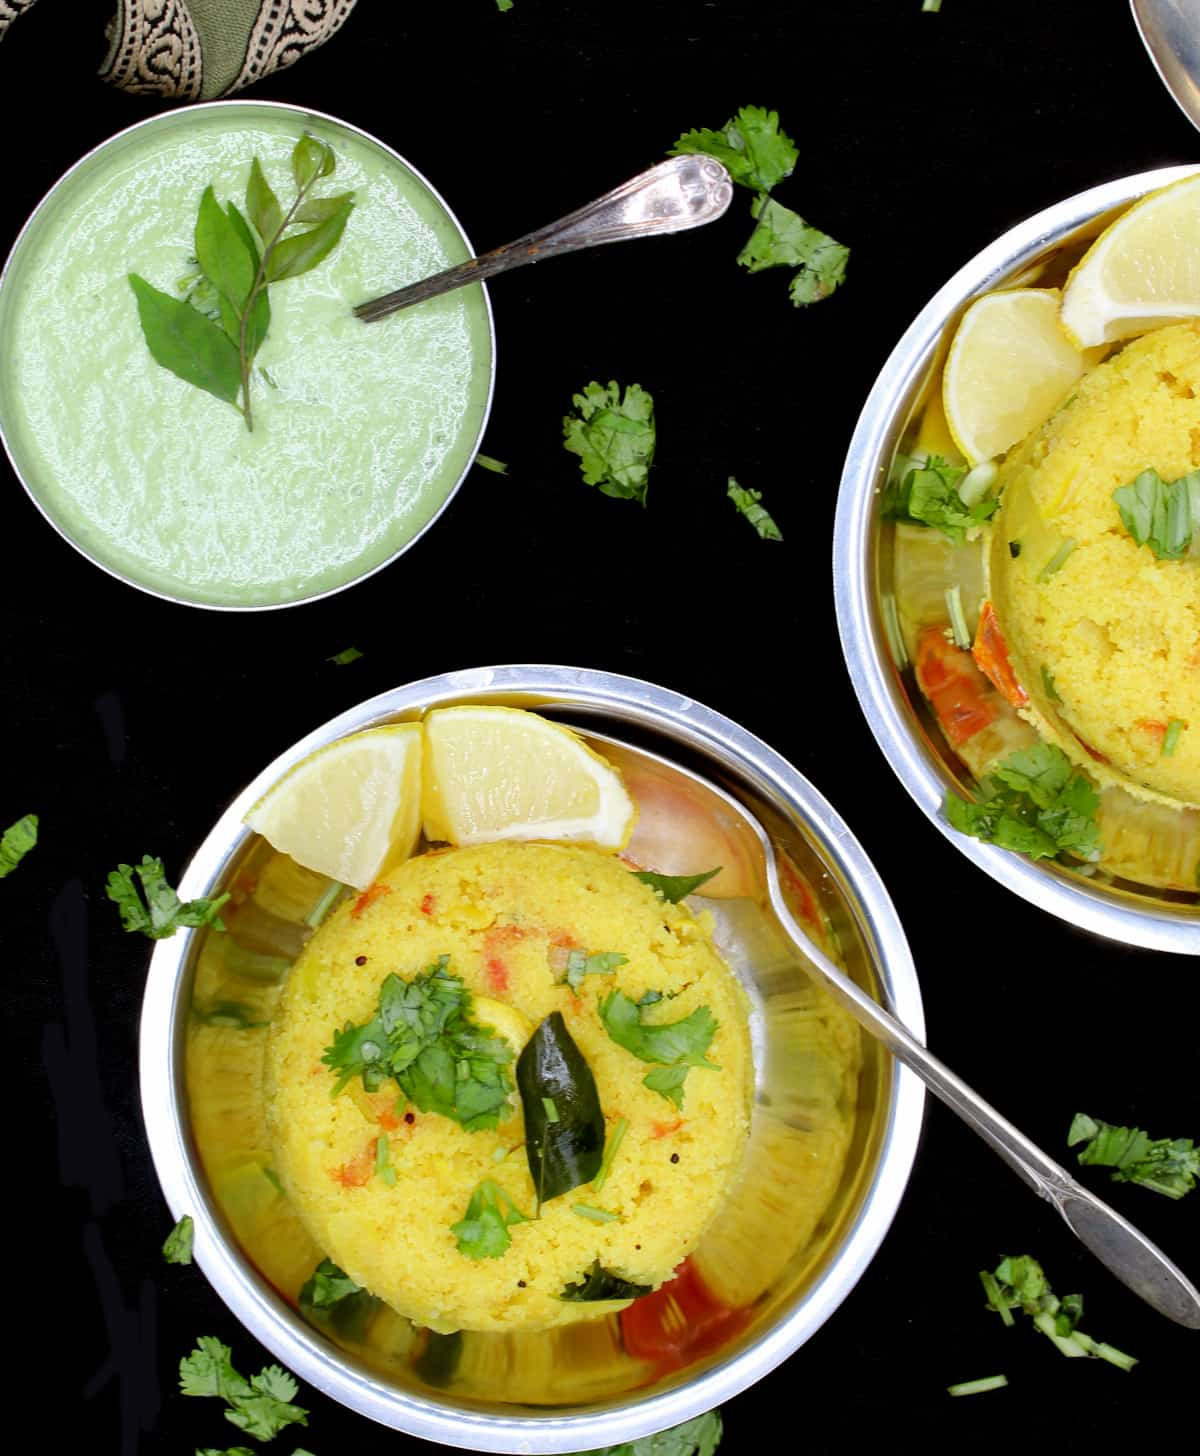 Overhead shot of a creamy green coconut chutney in a steel bowl with a spoon and garnished with curry leaves, served with south Indian upma in steel plates and garnished with cilantro and lemon, all on a black background.